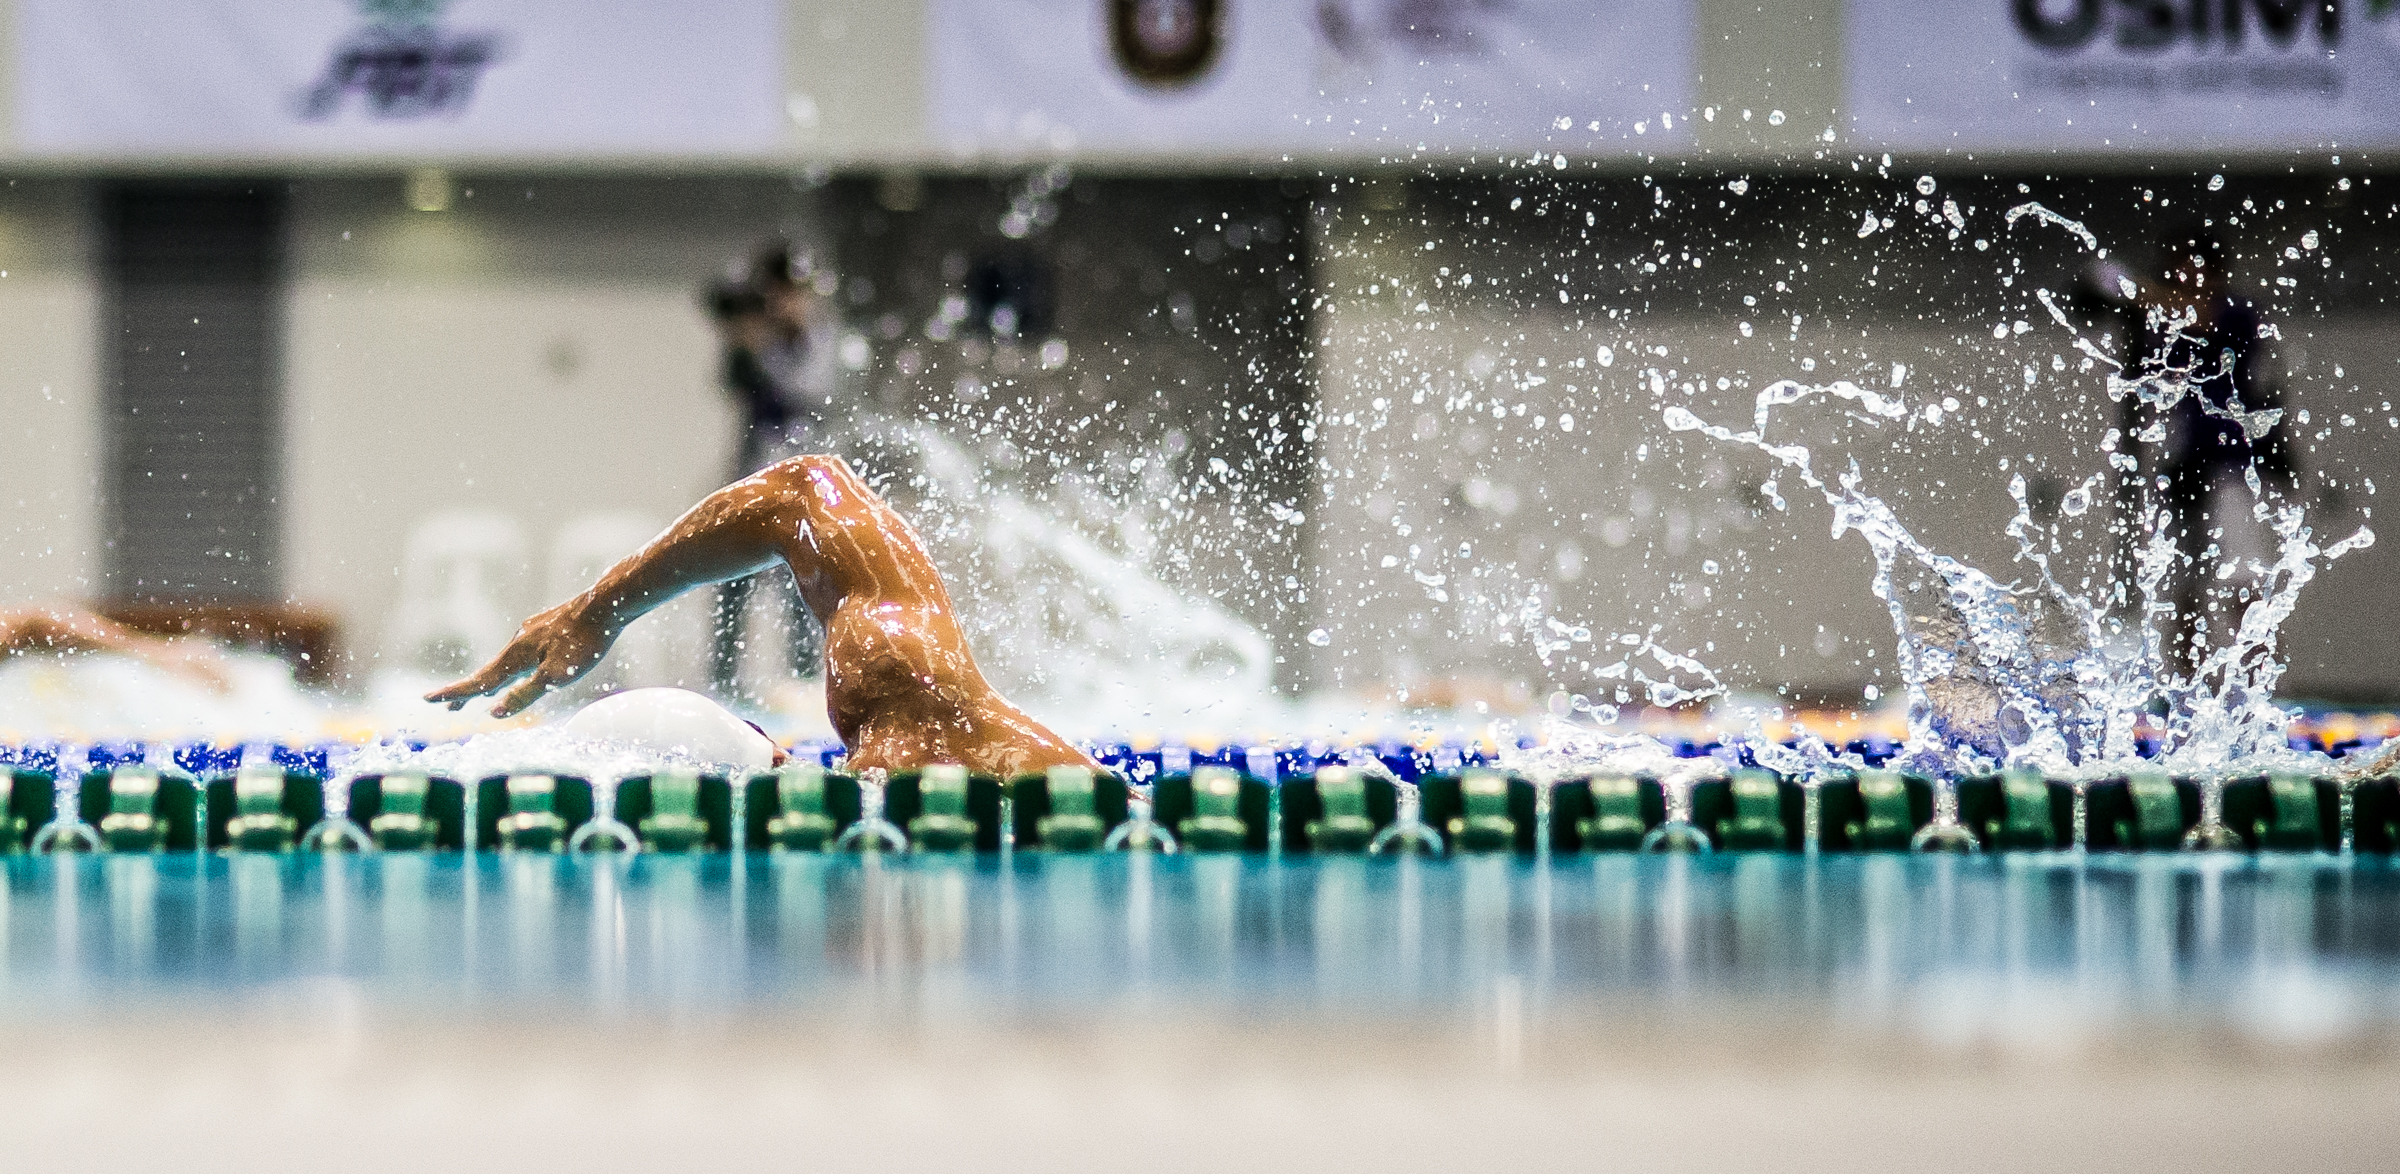 An Indonesian swimmer in action during the swimming competition of the ASEAN University Games at the OCBC Aquatic Centre.